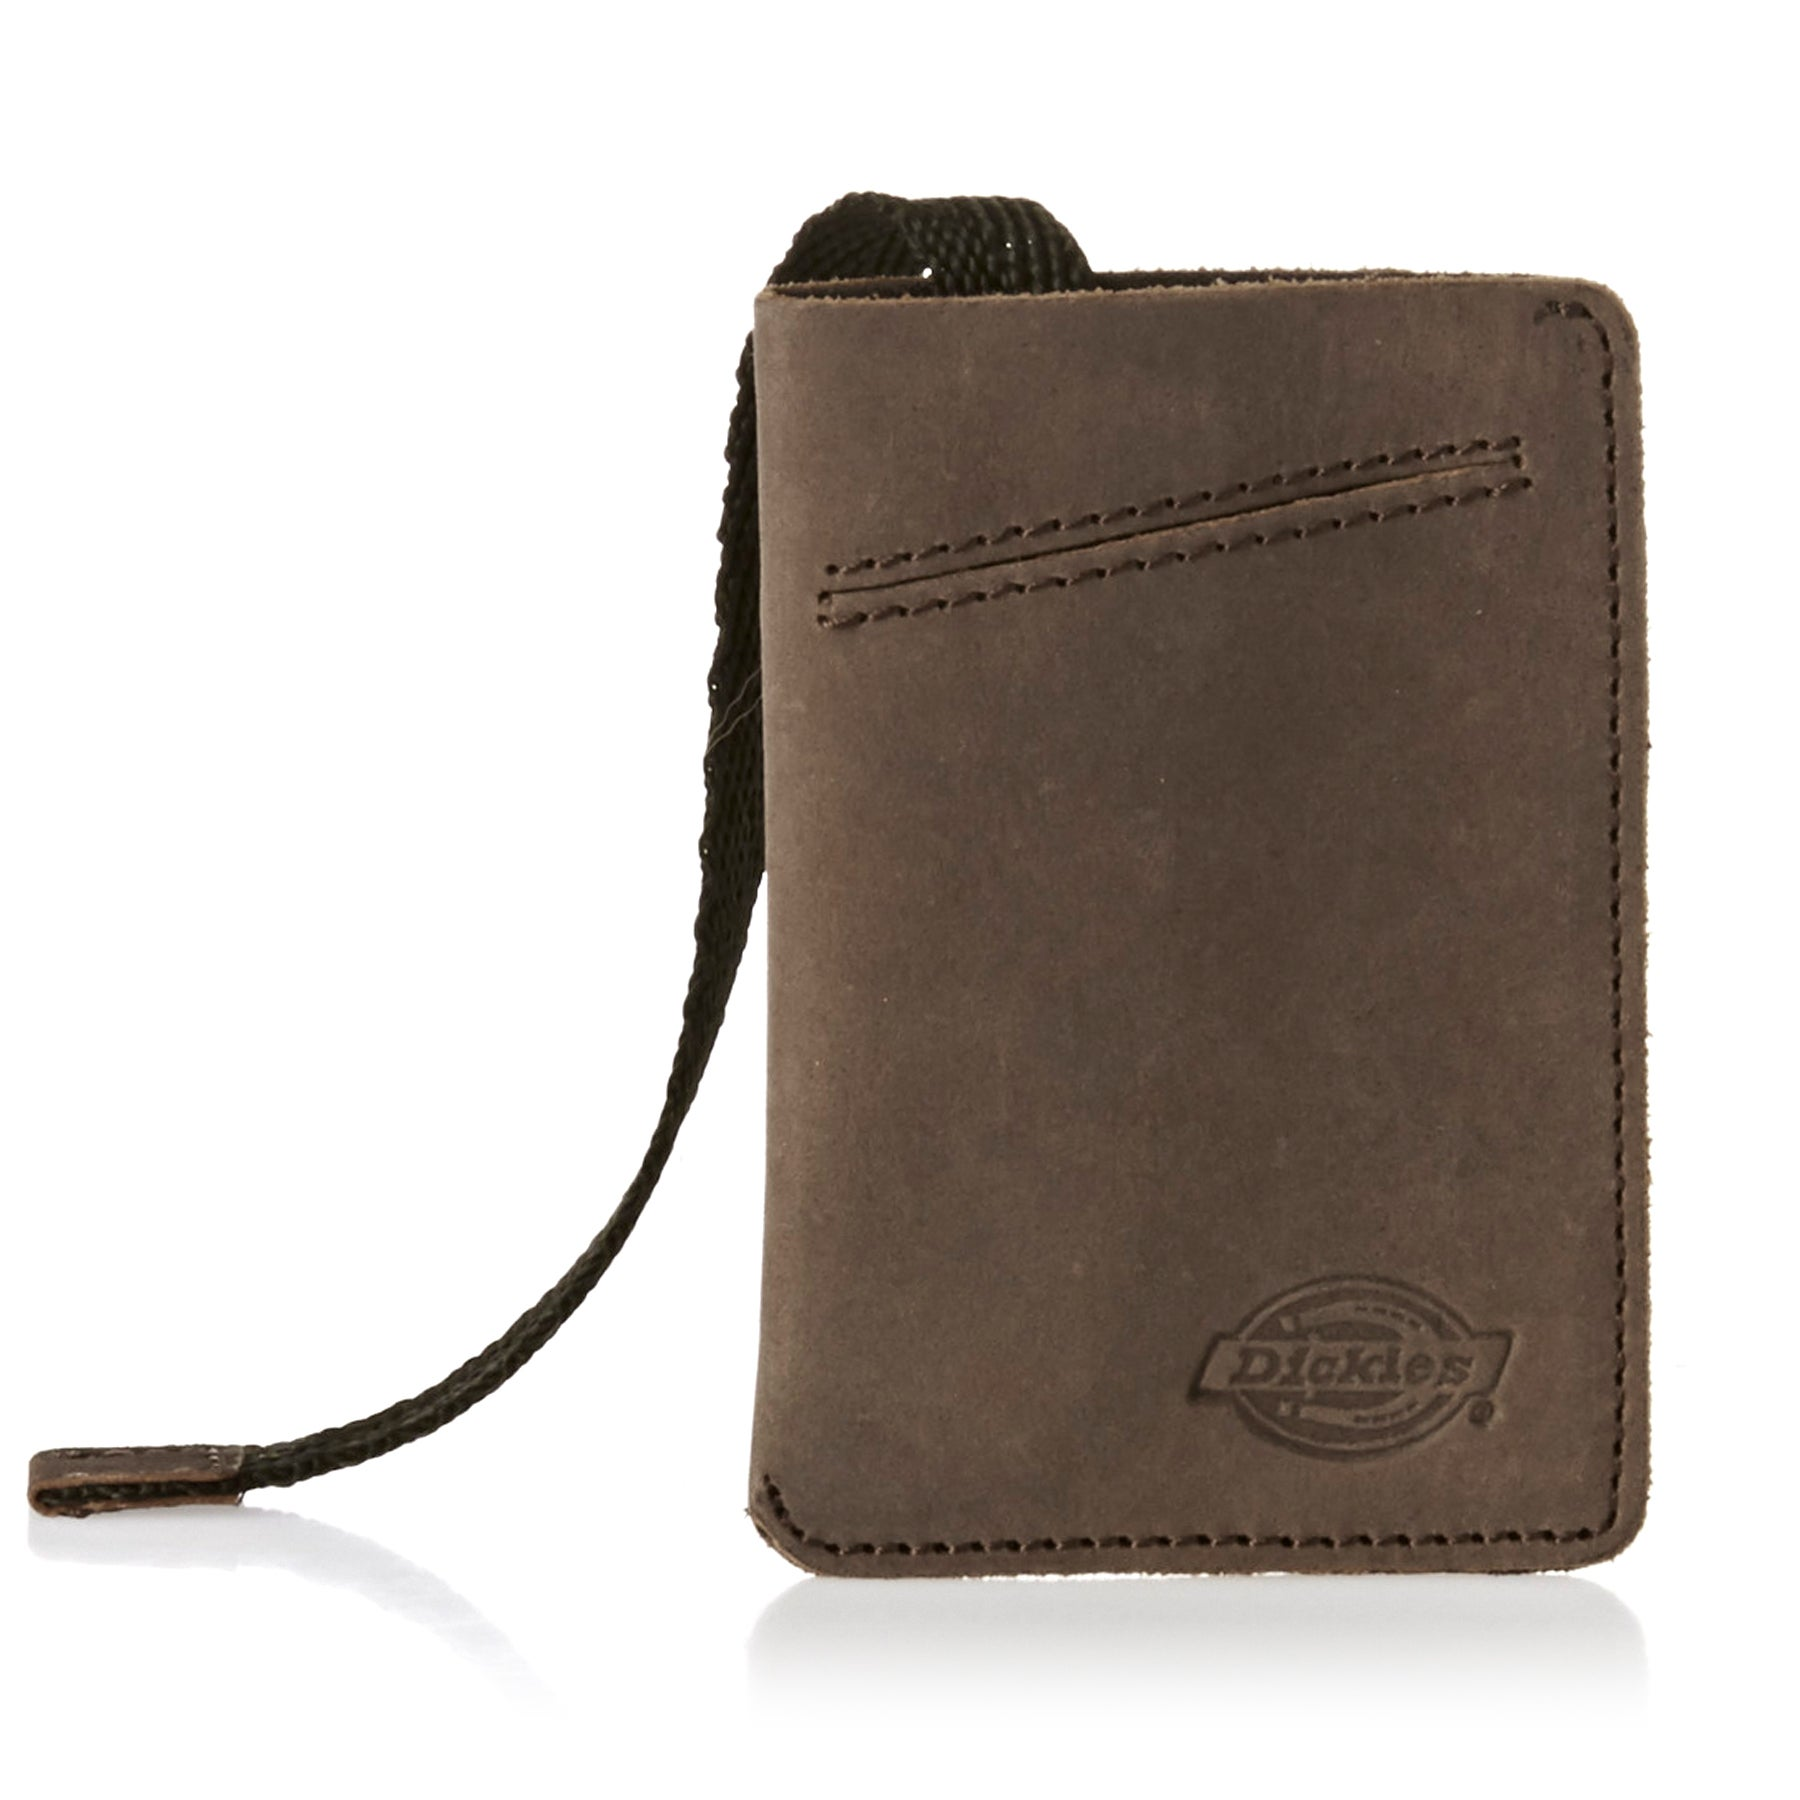 Dickies Larwill Wallet - Brown